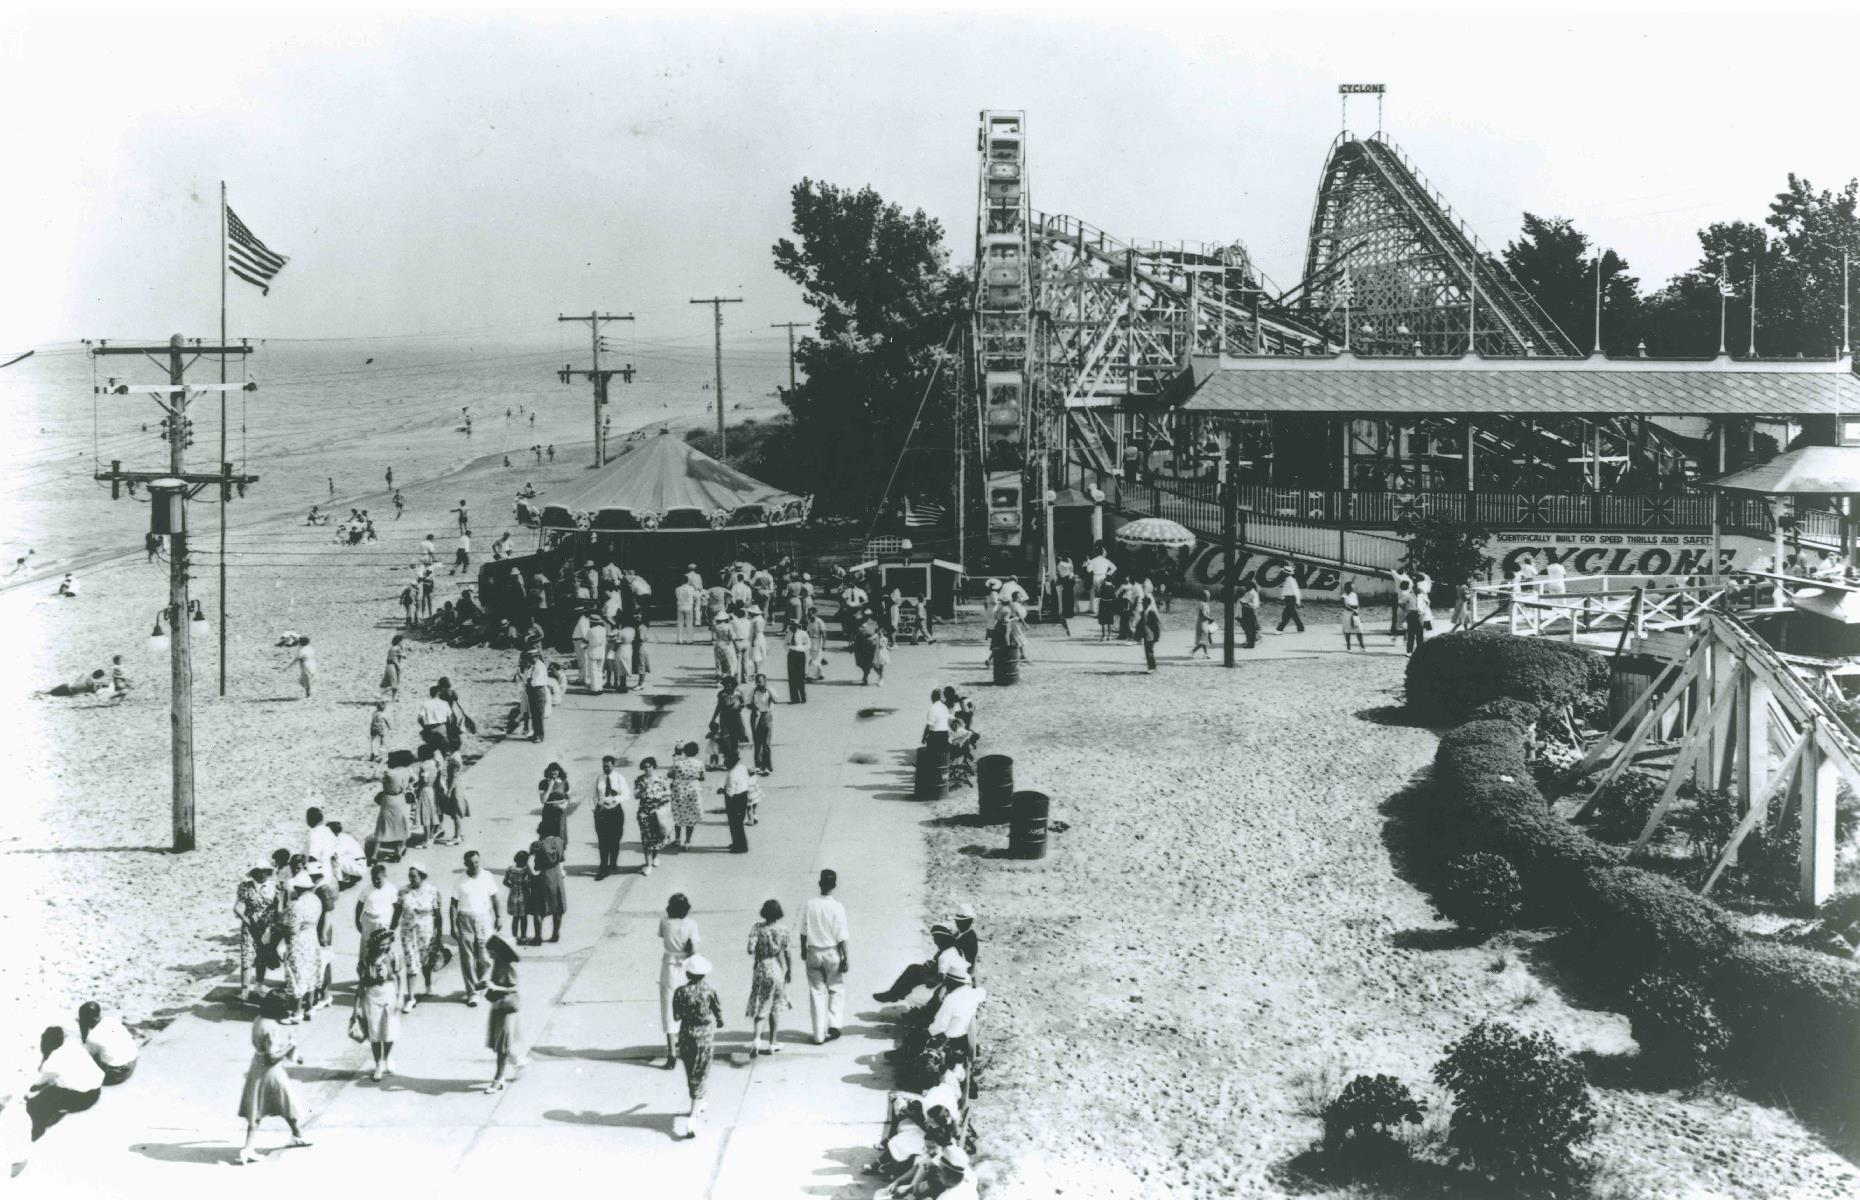 Slide 22 of 51: Cedar Point is one of the oldest theme parks in America and has been welcoming thrill-seekers through its gates for 150 years.The first roller coaster Switchback Railway debuted here in 1892, a couple of decades after the park opened. As you can see from this shot taken in the 1920s, it quickly became a busy and popular destination as more and more rides and attractions were added.Check out thesestunning historic images of theme parks in full swing.